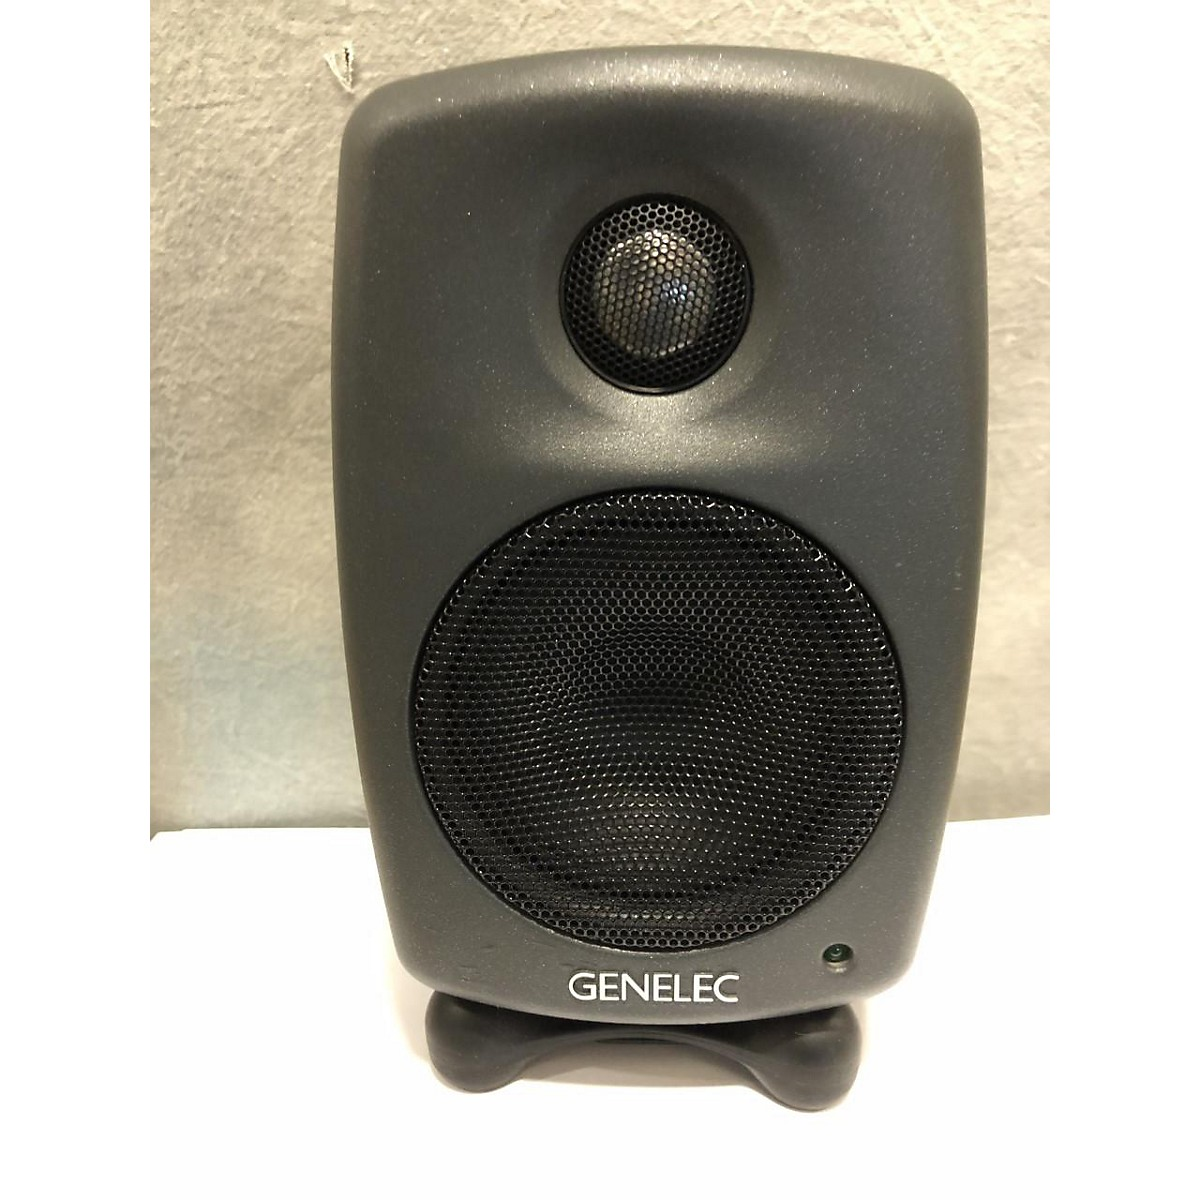 Genelec 8010A BI-AMPLIFIED MONITORING SYSTEM Powered Monitor